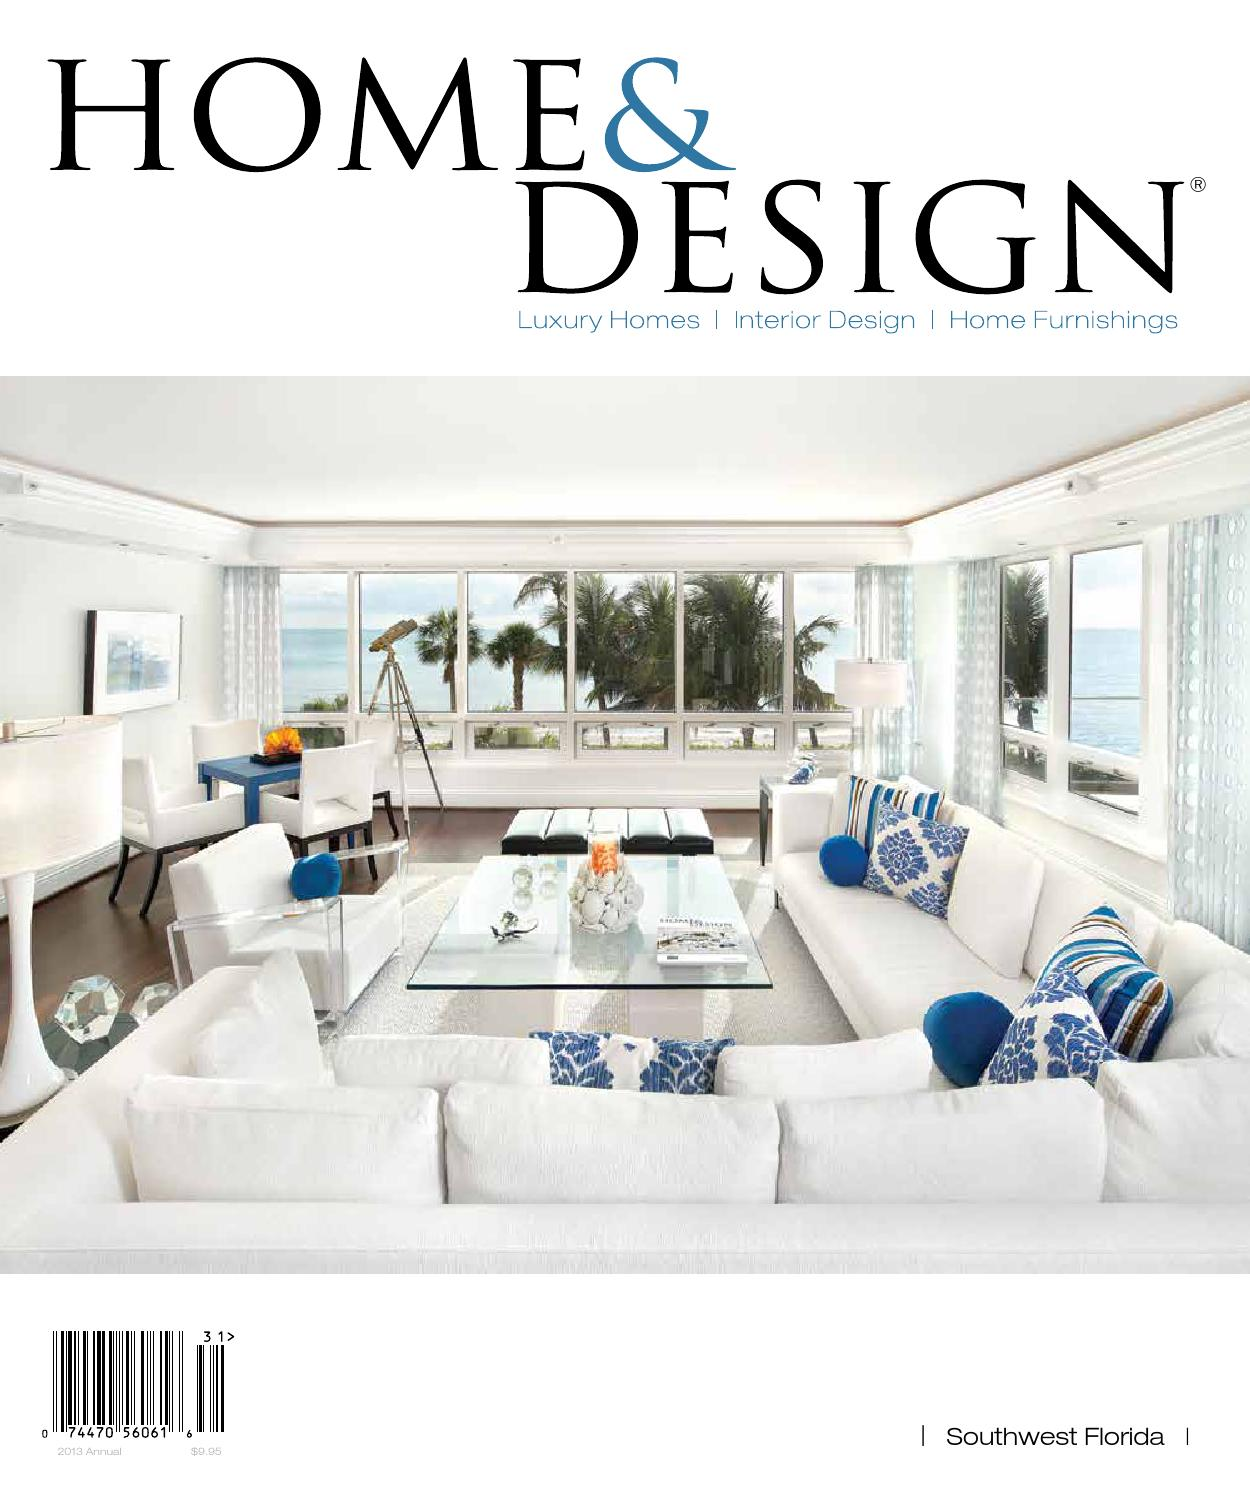 Good interior design magazines interior design 2015 for Good interior design for home